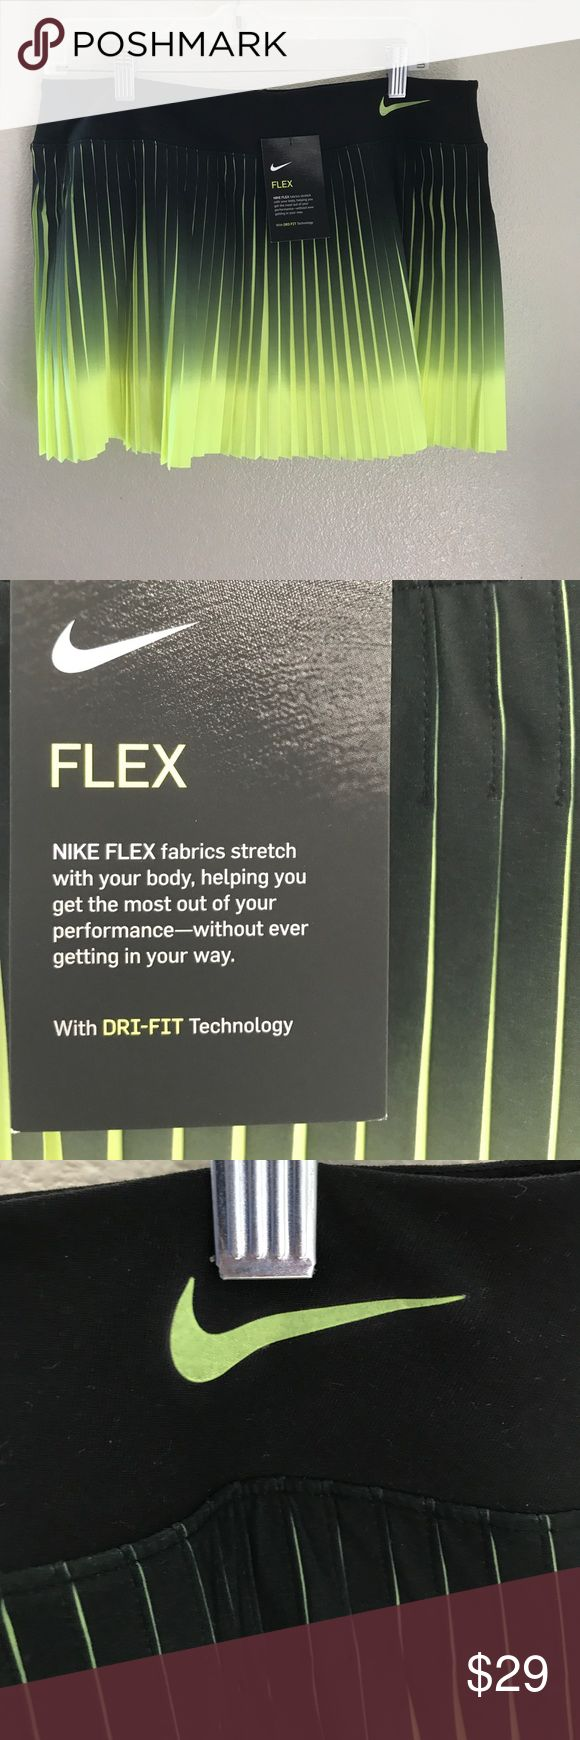 Black and Neon Yellow Nike Skorts size L Nike Flex pleated skorts size large new with tag. Black and neon yellow make this the perfect skirt for a morning and evening run or playing sports. Helping to make you visible. Nike Shorts Skorts